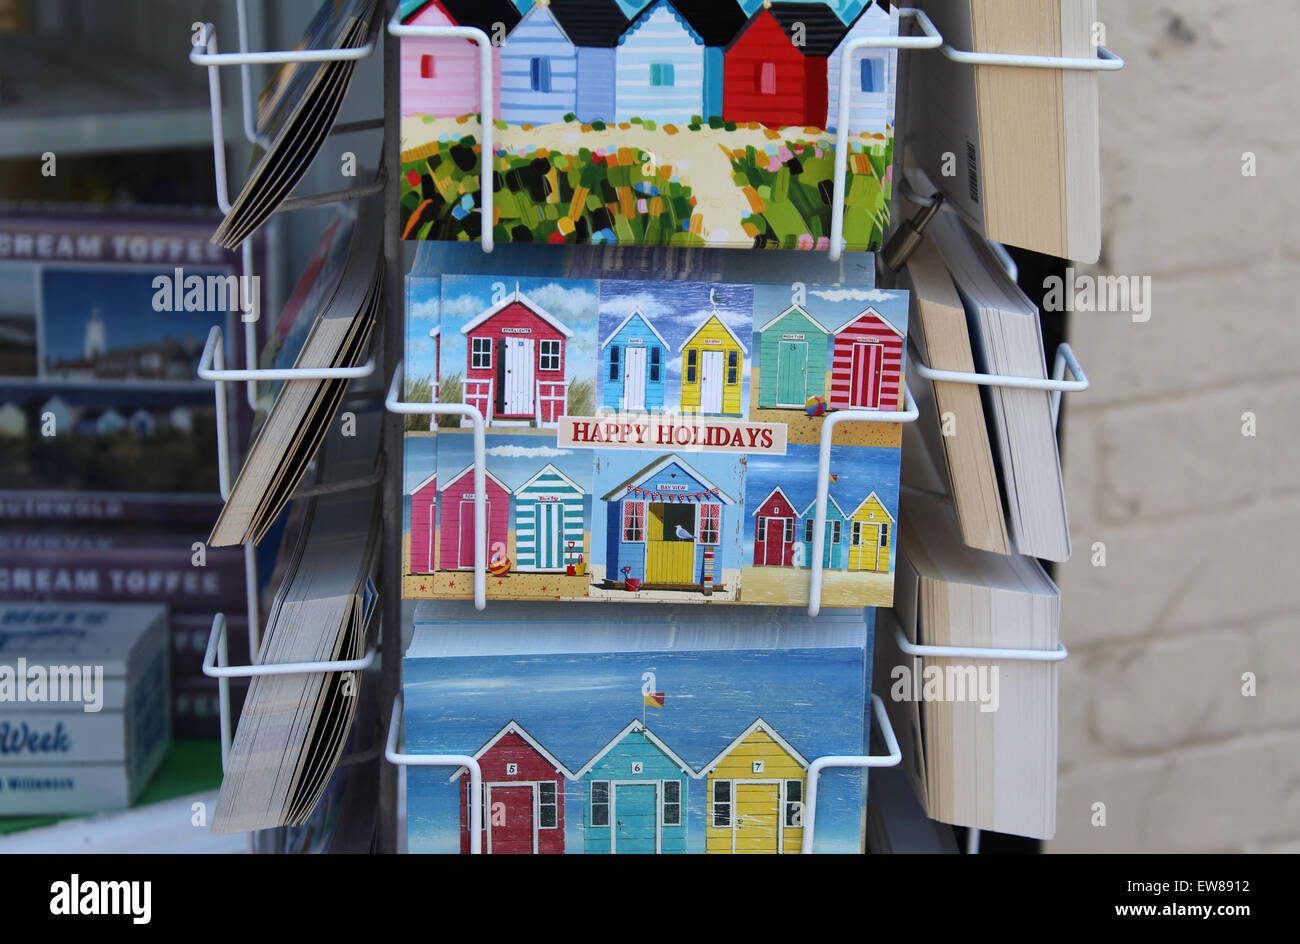 Postcards for sale at Southwold in Suffolk - Stock Image